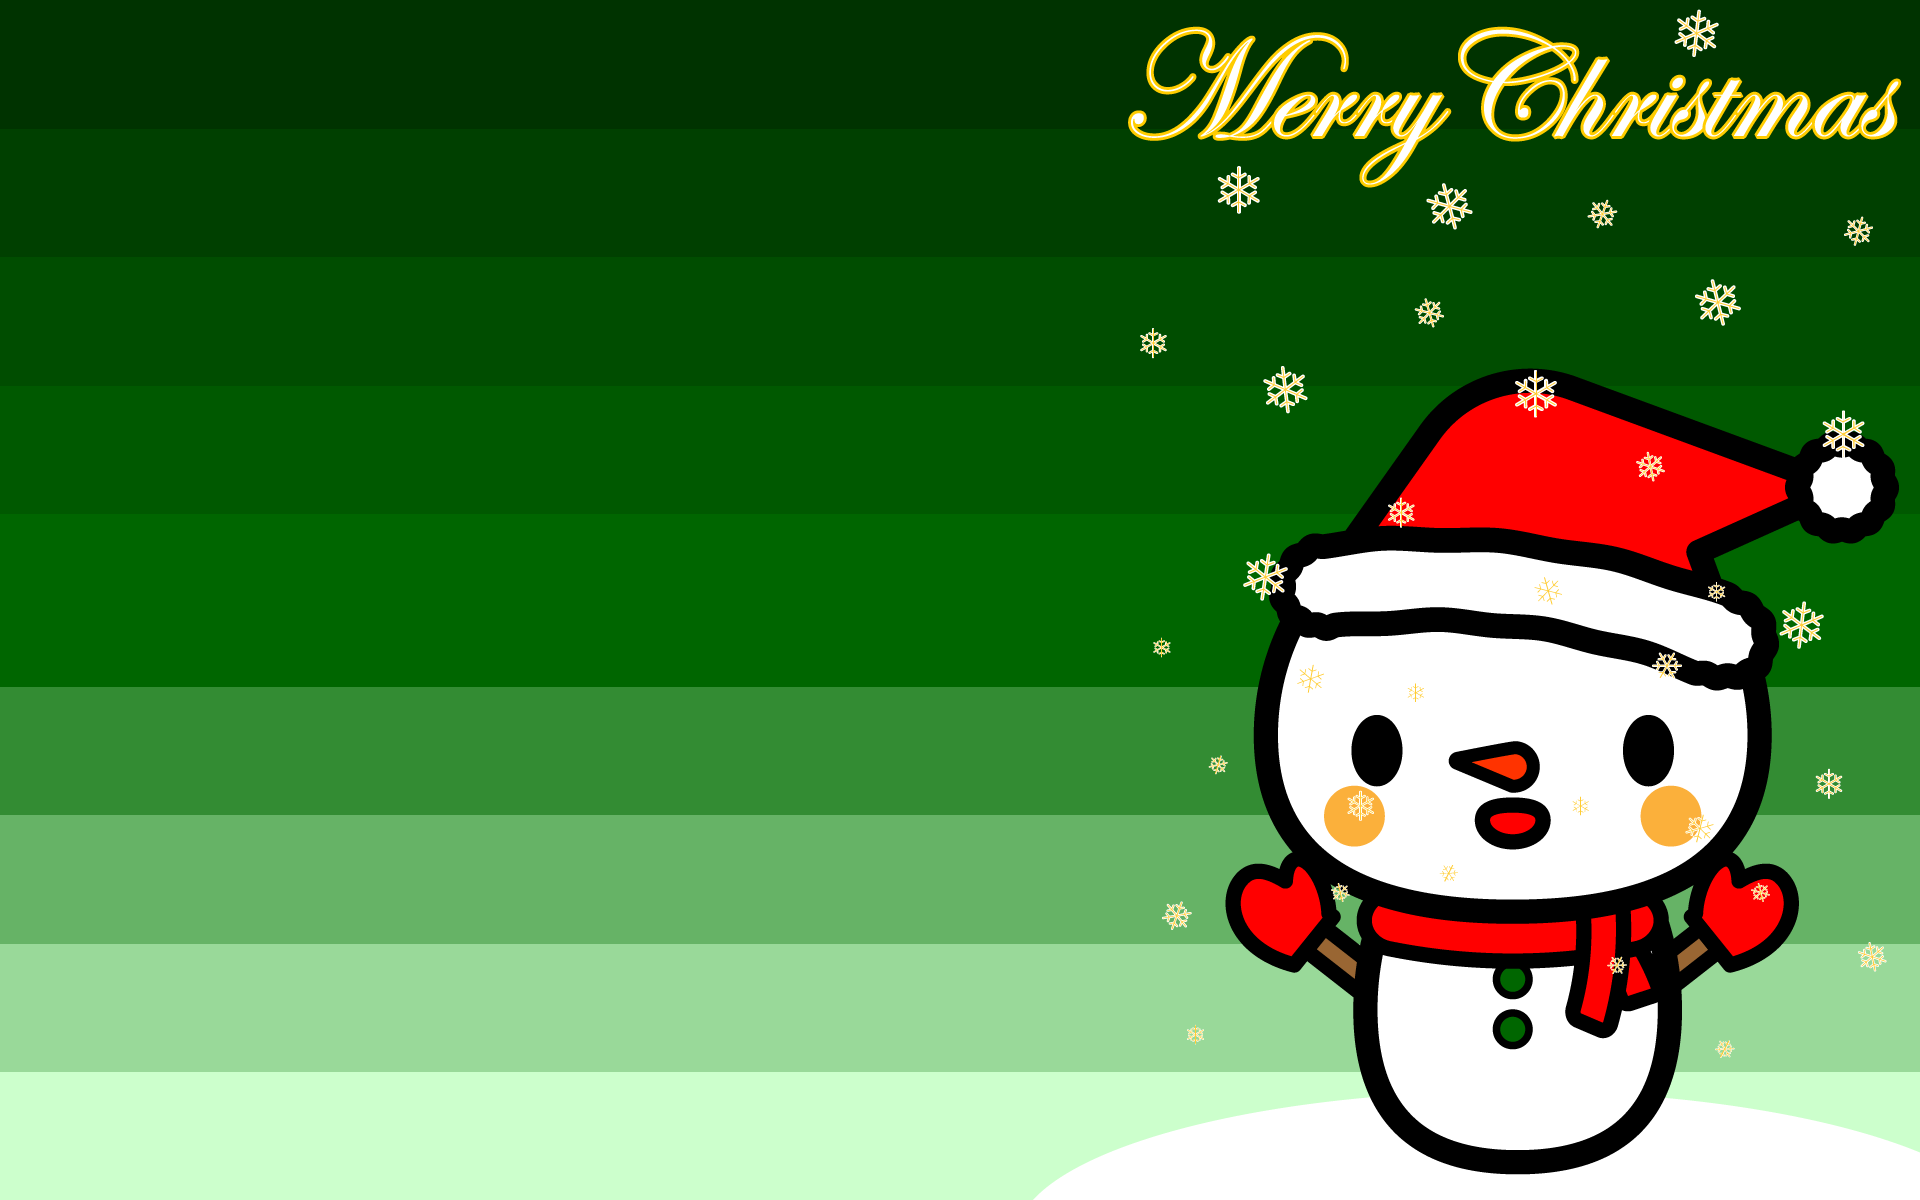 wallpaper6_christmas-snowman-green-pc